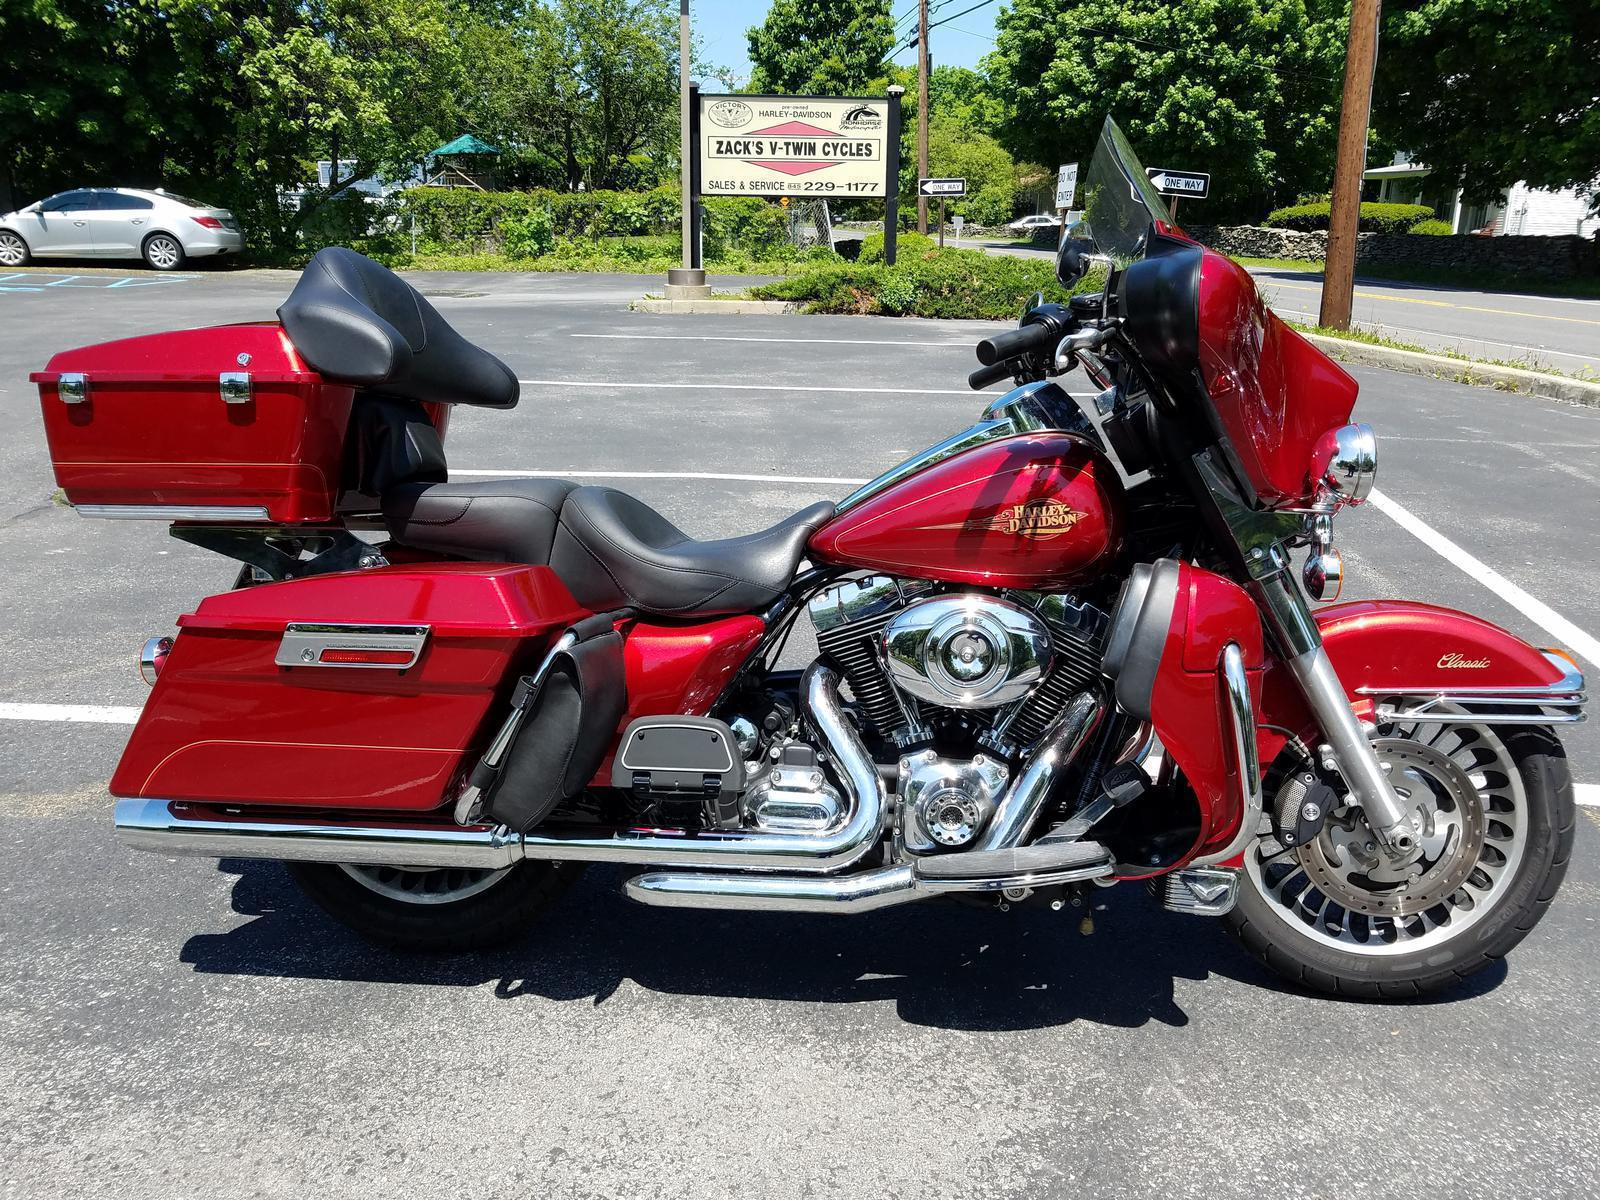 2012 Harley Davidson Flhtc For Sale In Hyde Park Ny Zacks V Twin Red Electra Glide Classic Right